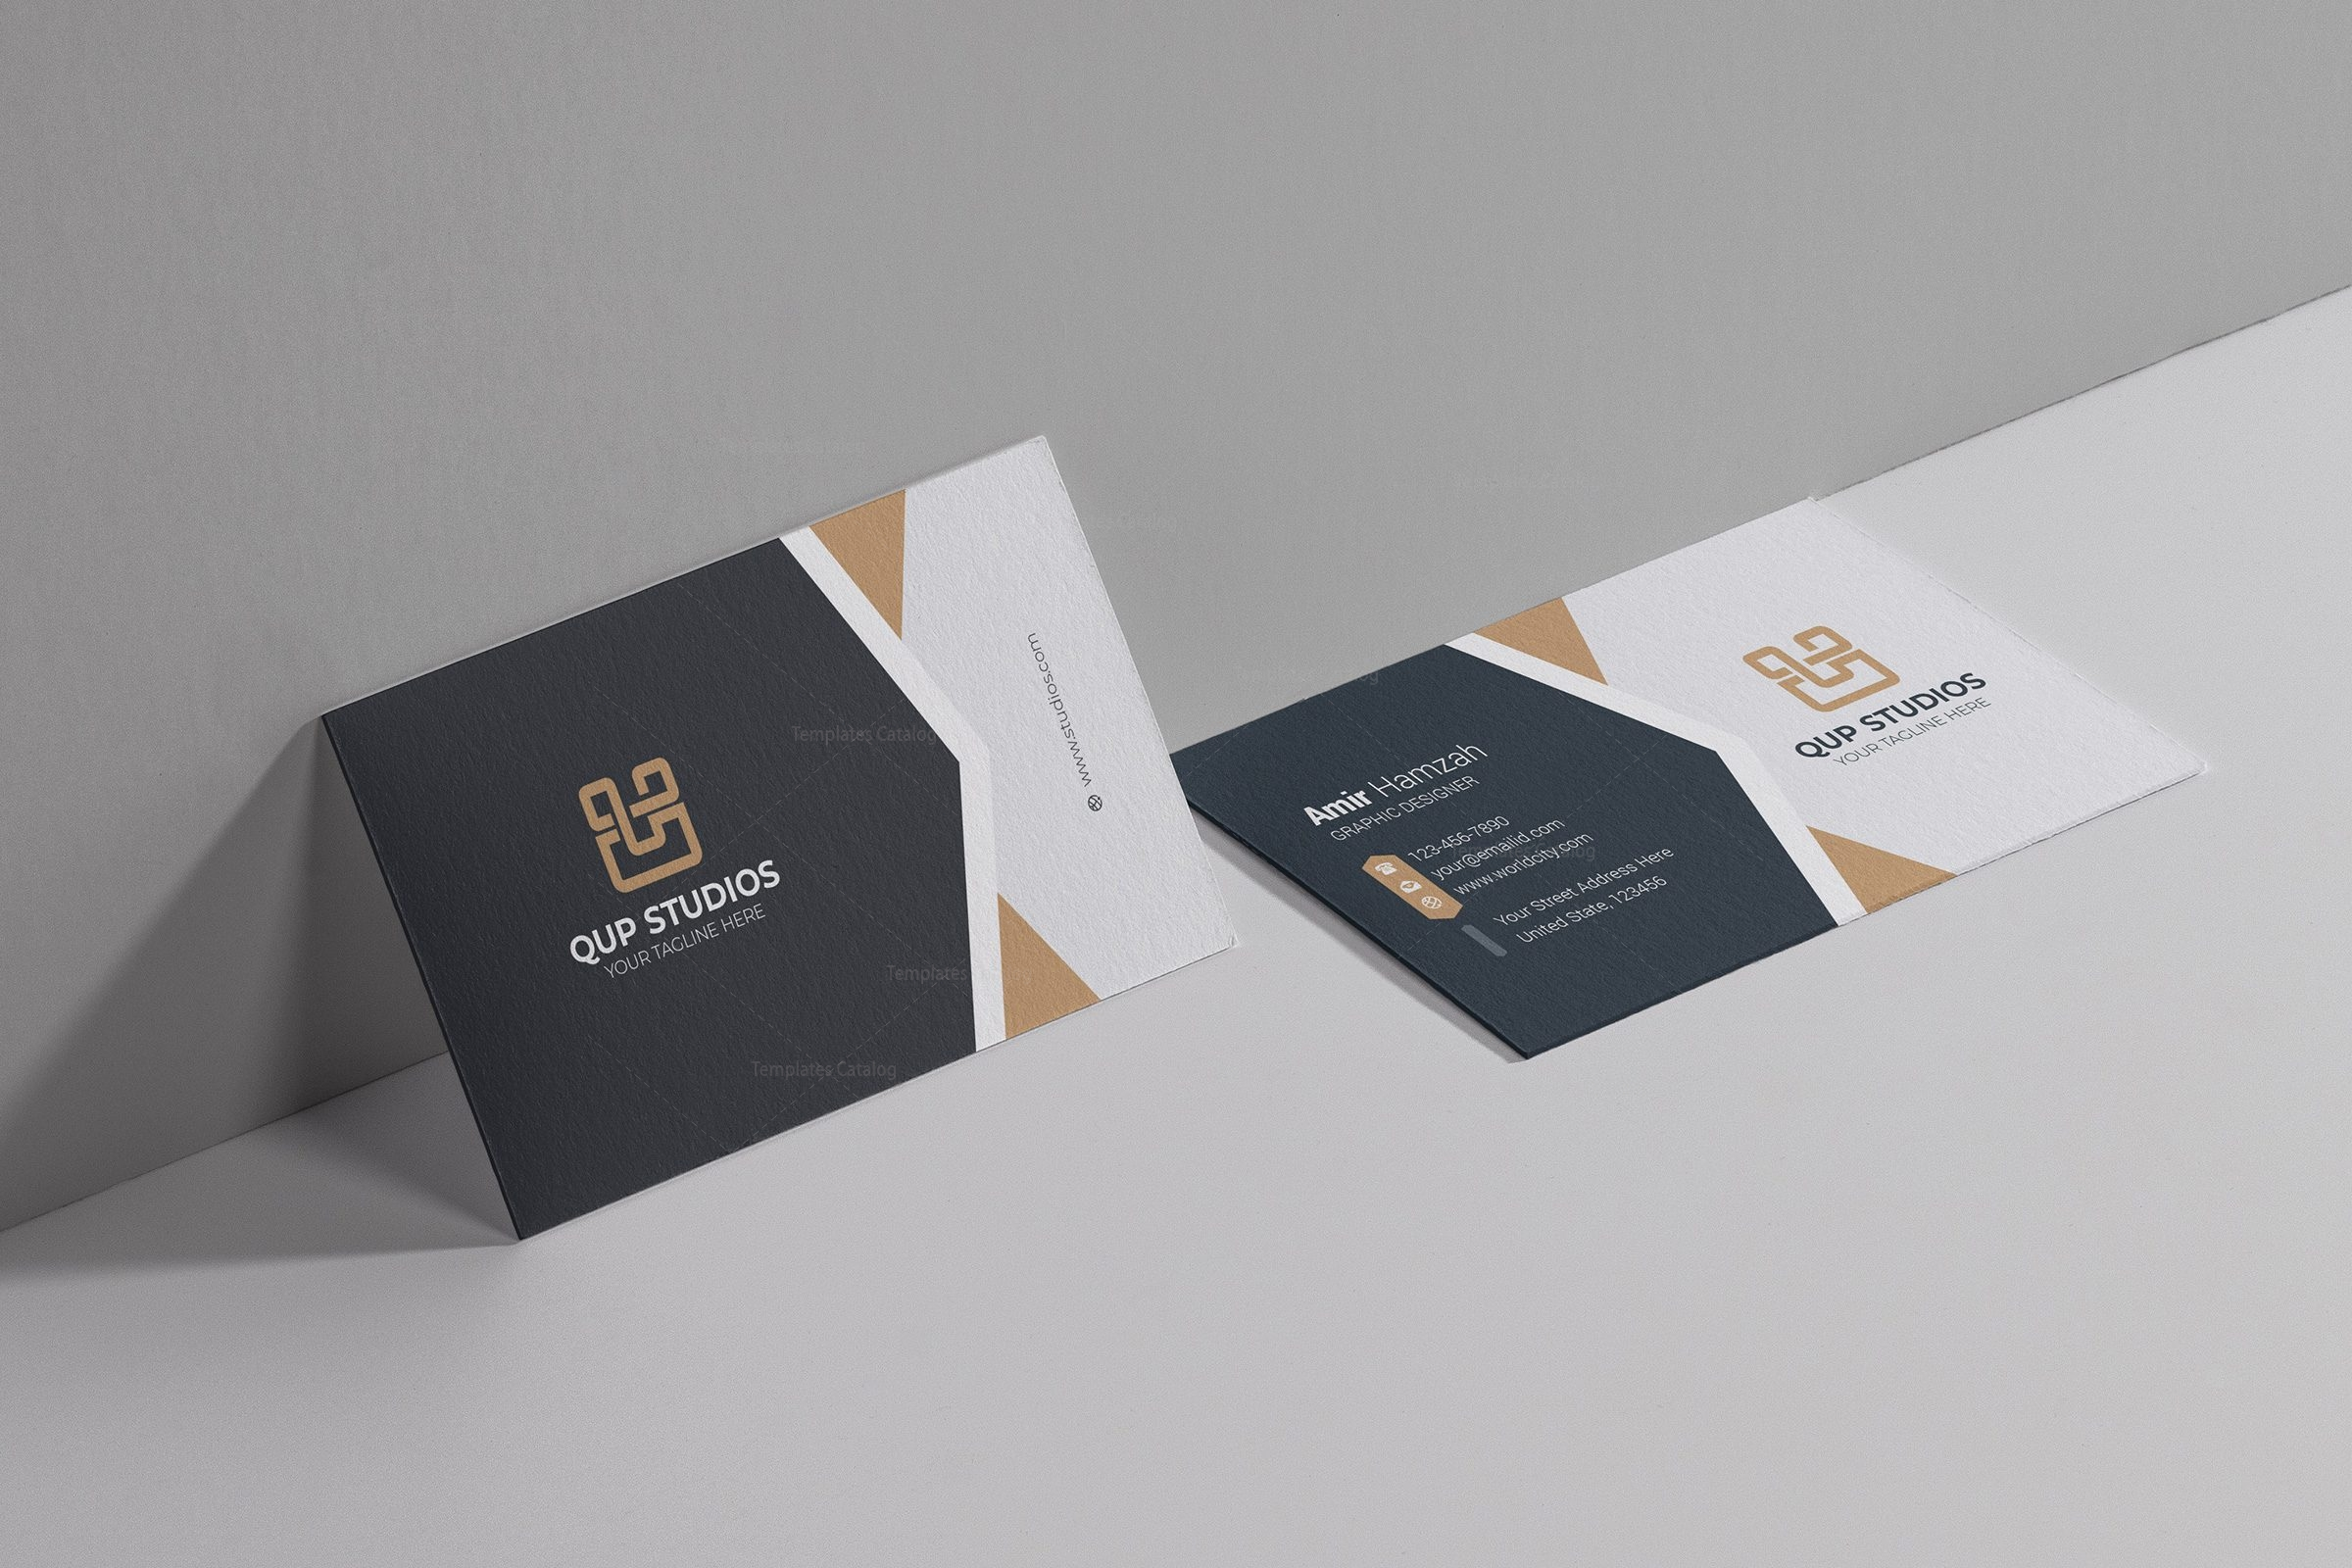 Studio professional business card design template 001786 template studio professionals business card design templates 1 colourmoves